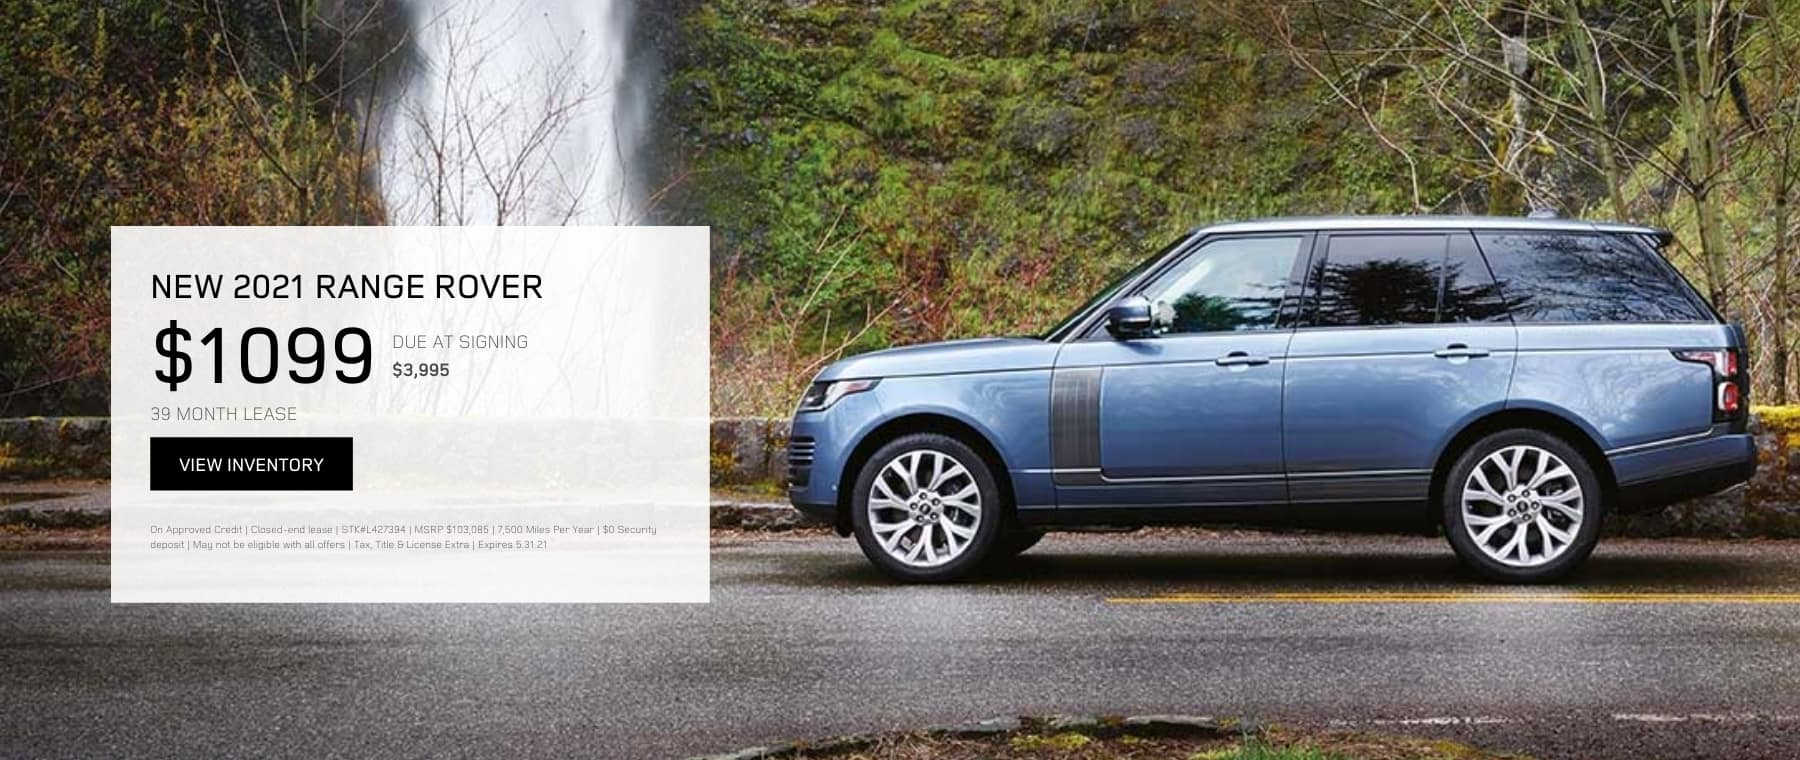 MAY RANGE ROVER OFFER